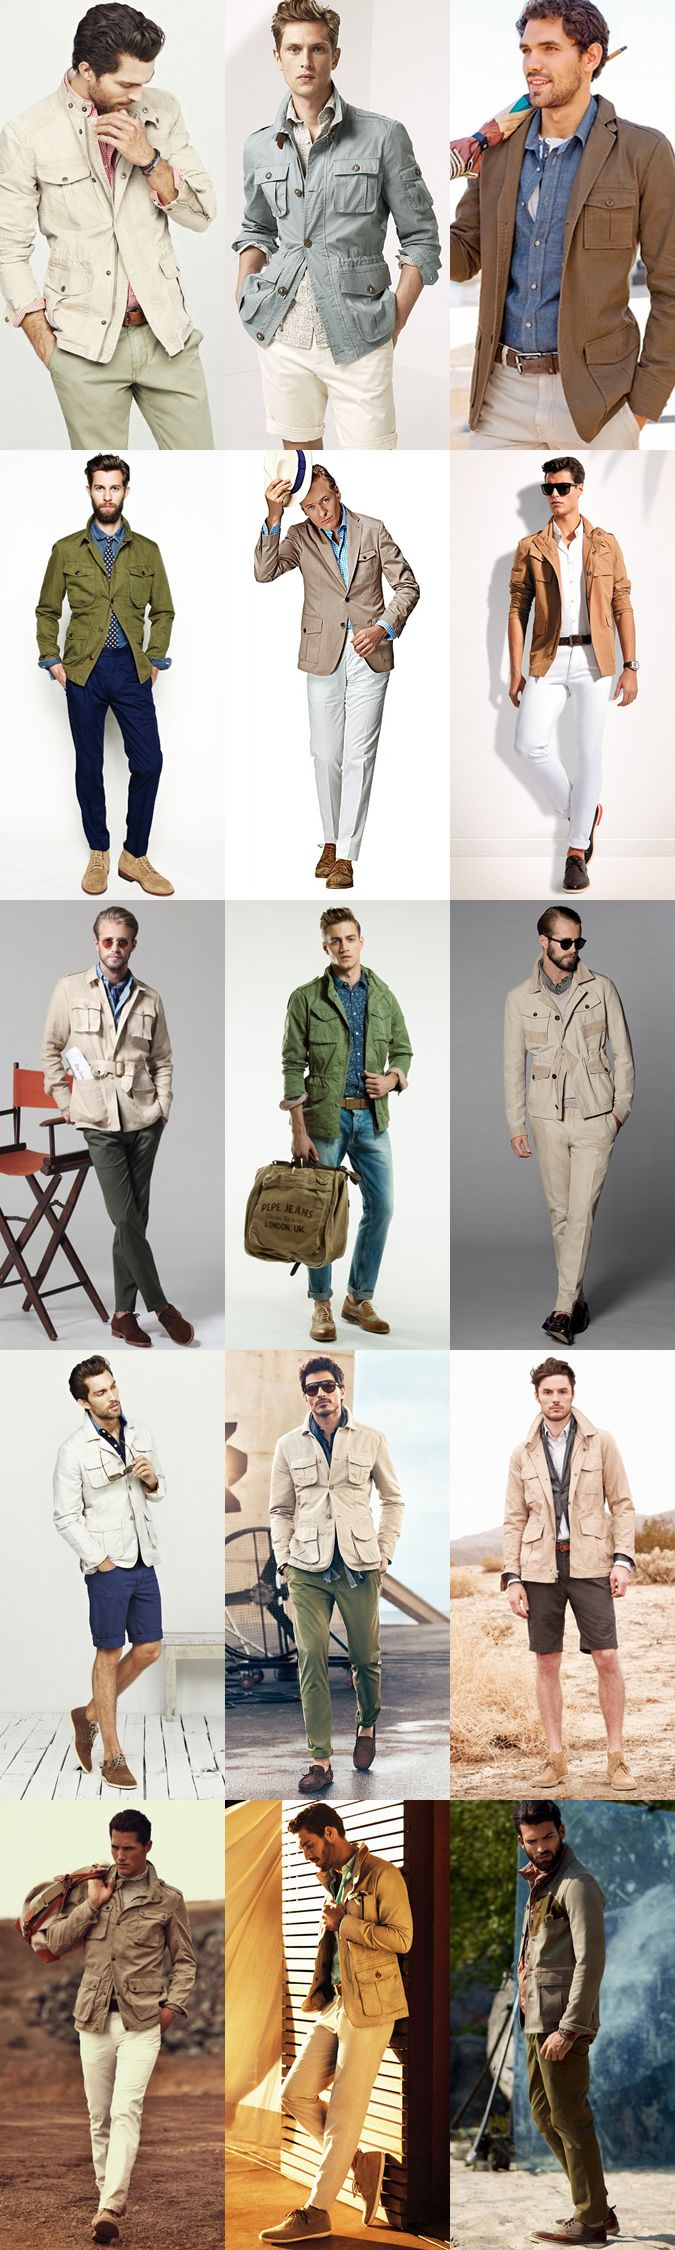 Style Inspiration: Modern Safari - The Safari Jacket Lookbook Inspiration